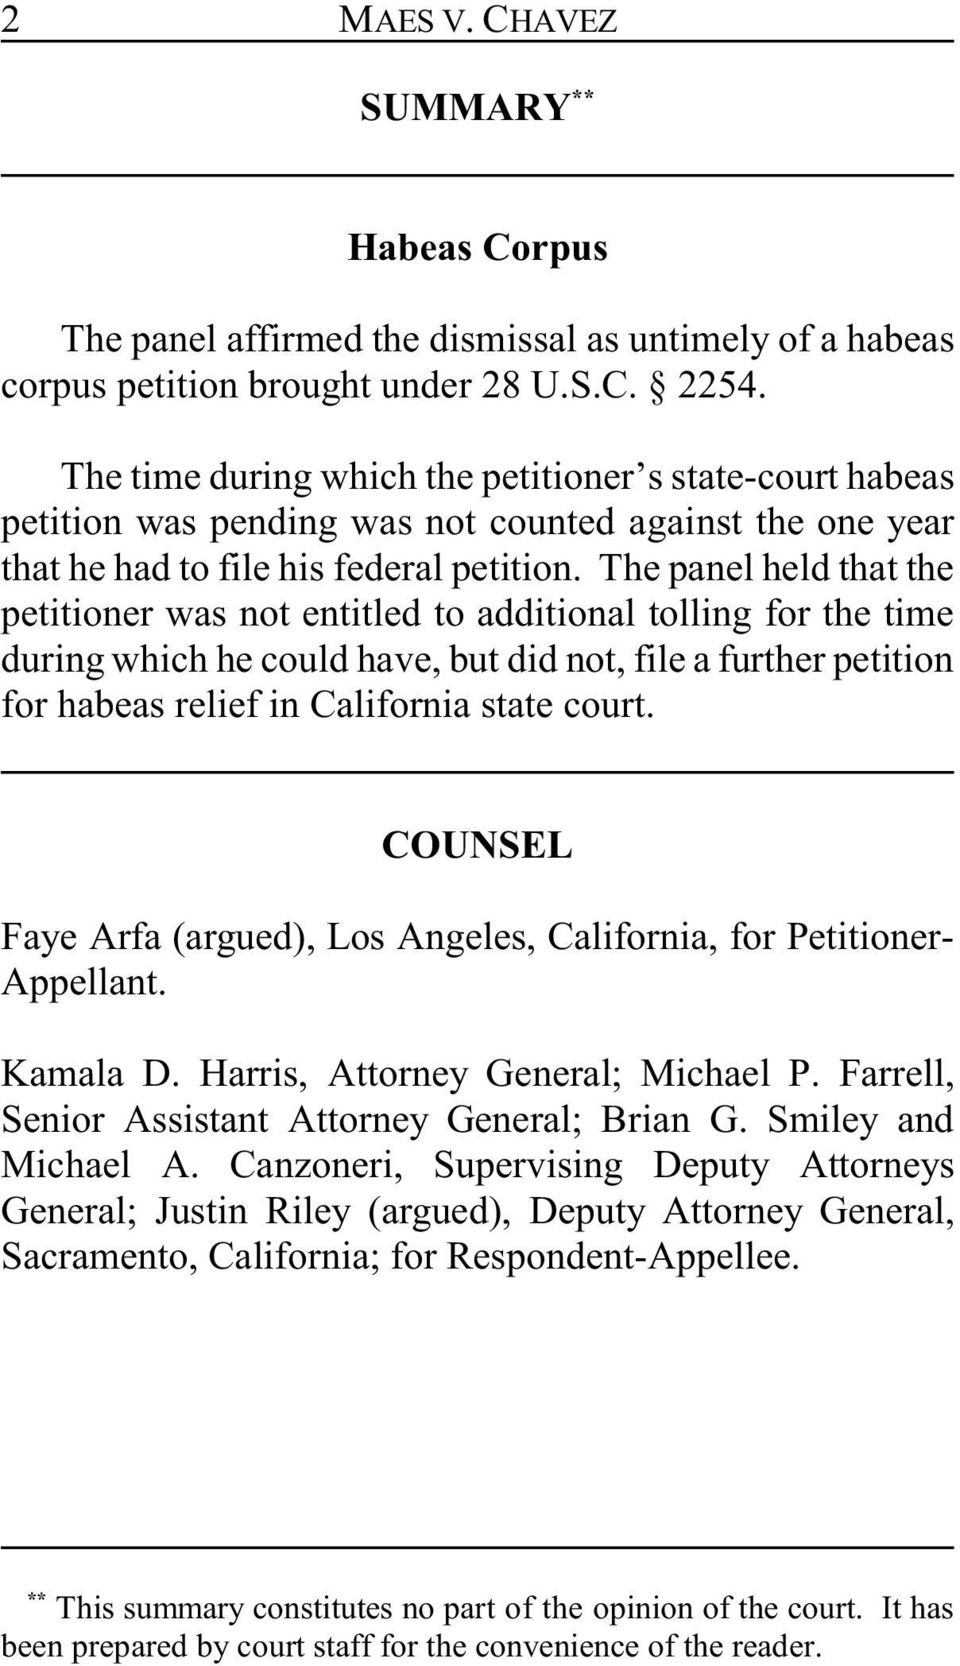 The panel held that the petitioner was not entitled to additional tolling for the time during which he could have, but did not, file a further petition for habeas relief in California state court.